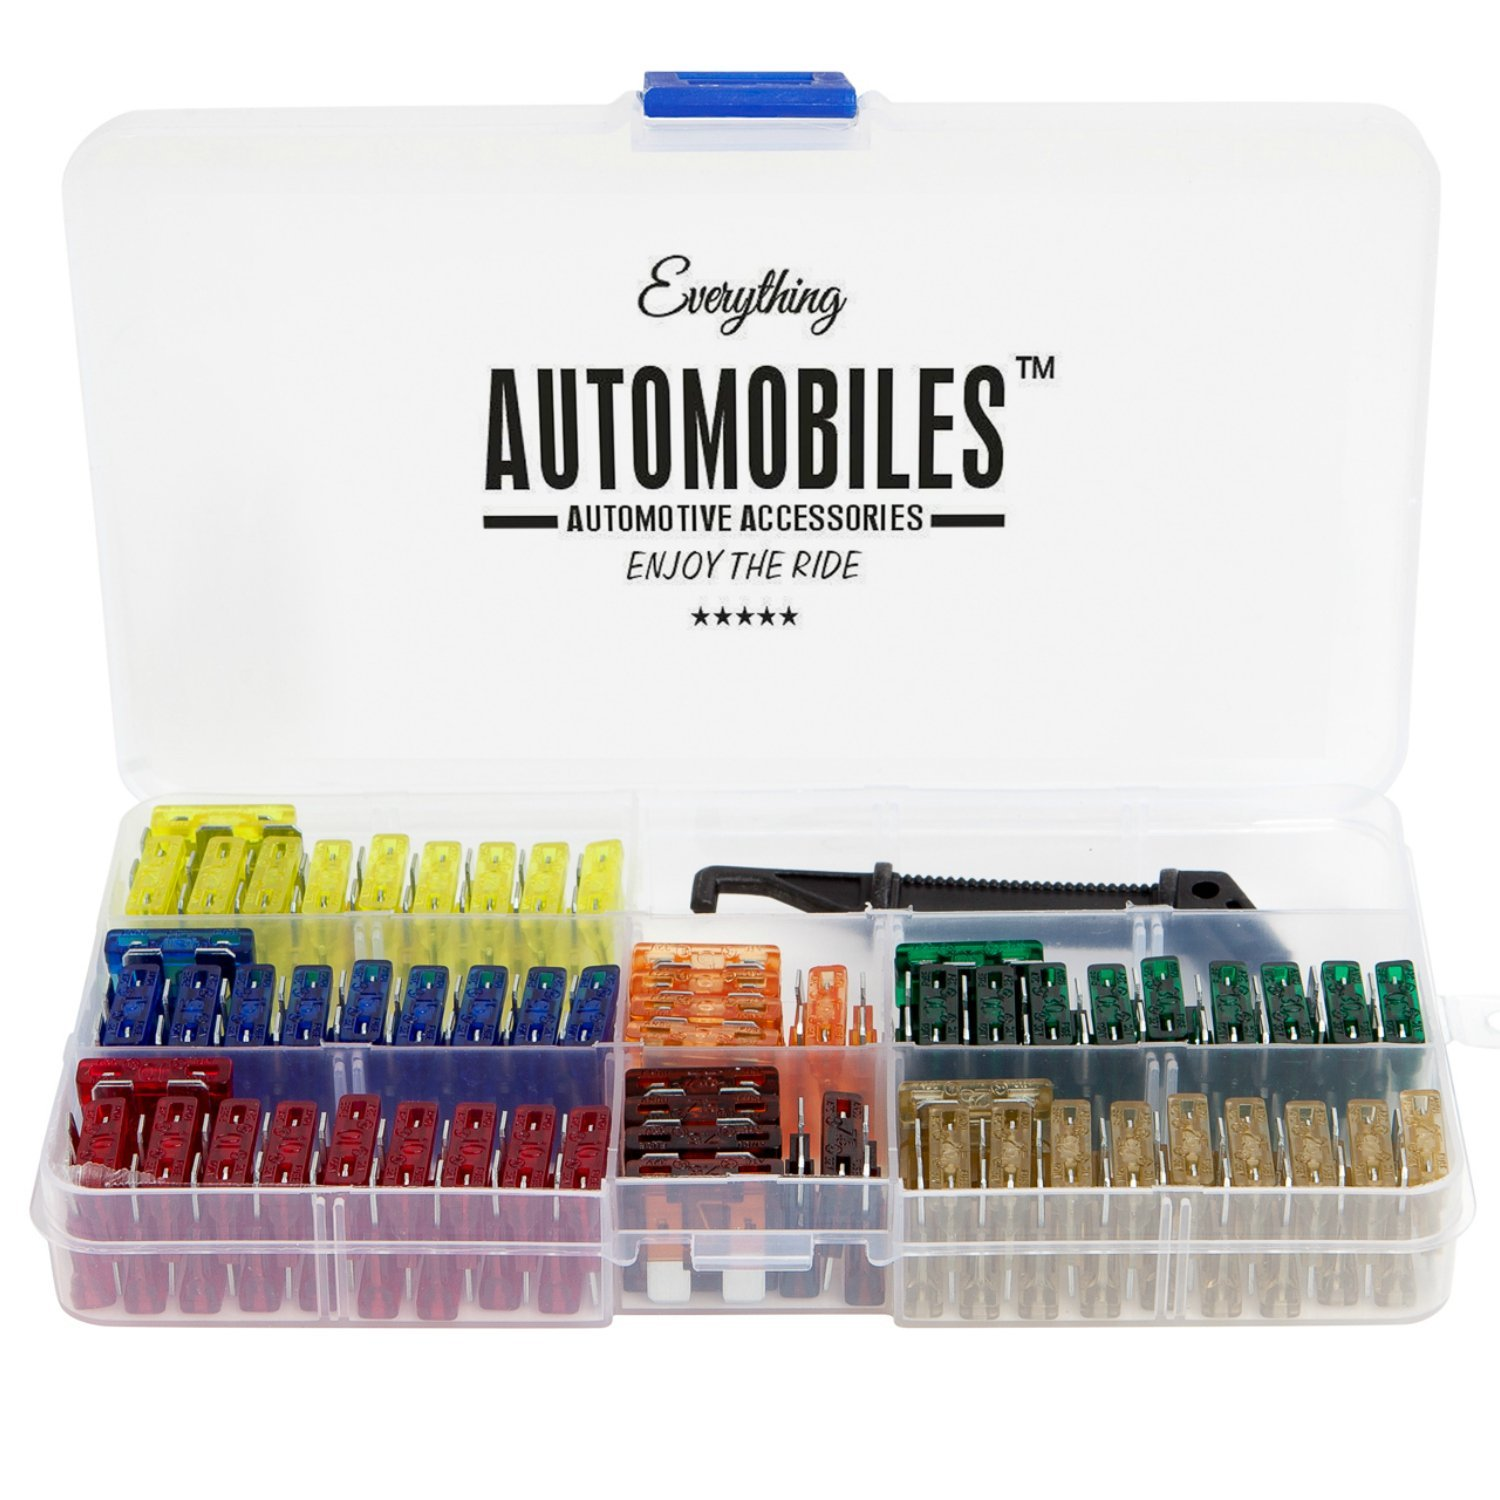 Includes Fuse Puller Tool Everything Automobiles Great for Use on Cars 120 Assorted Fuses with 10 Inline Fuse Holders